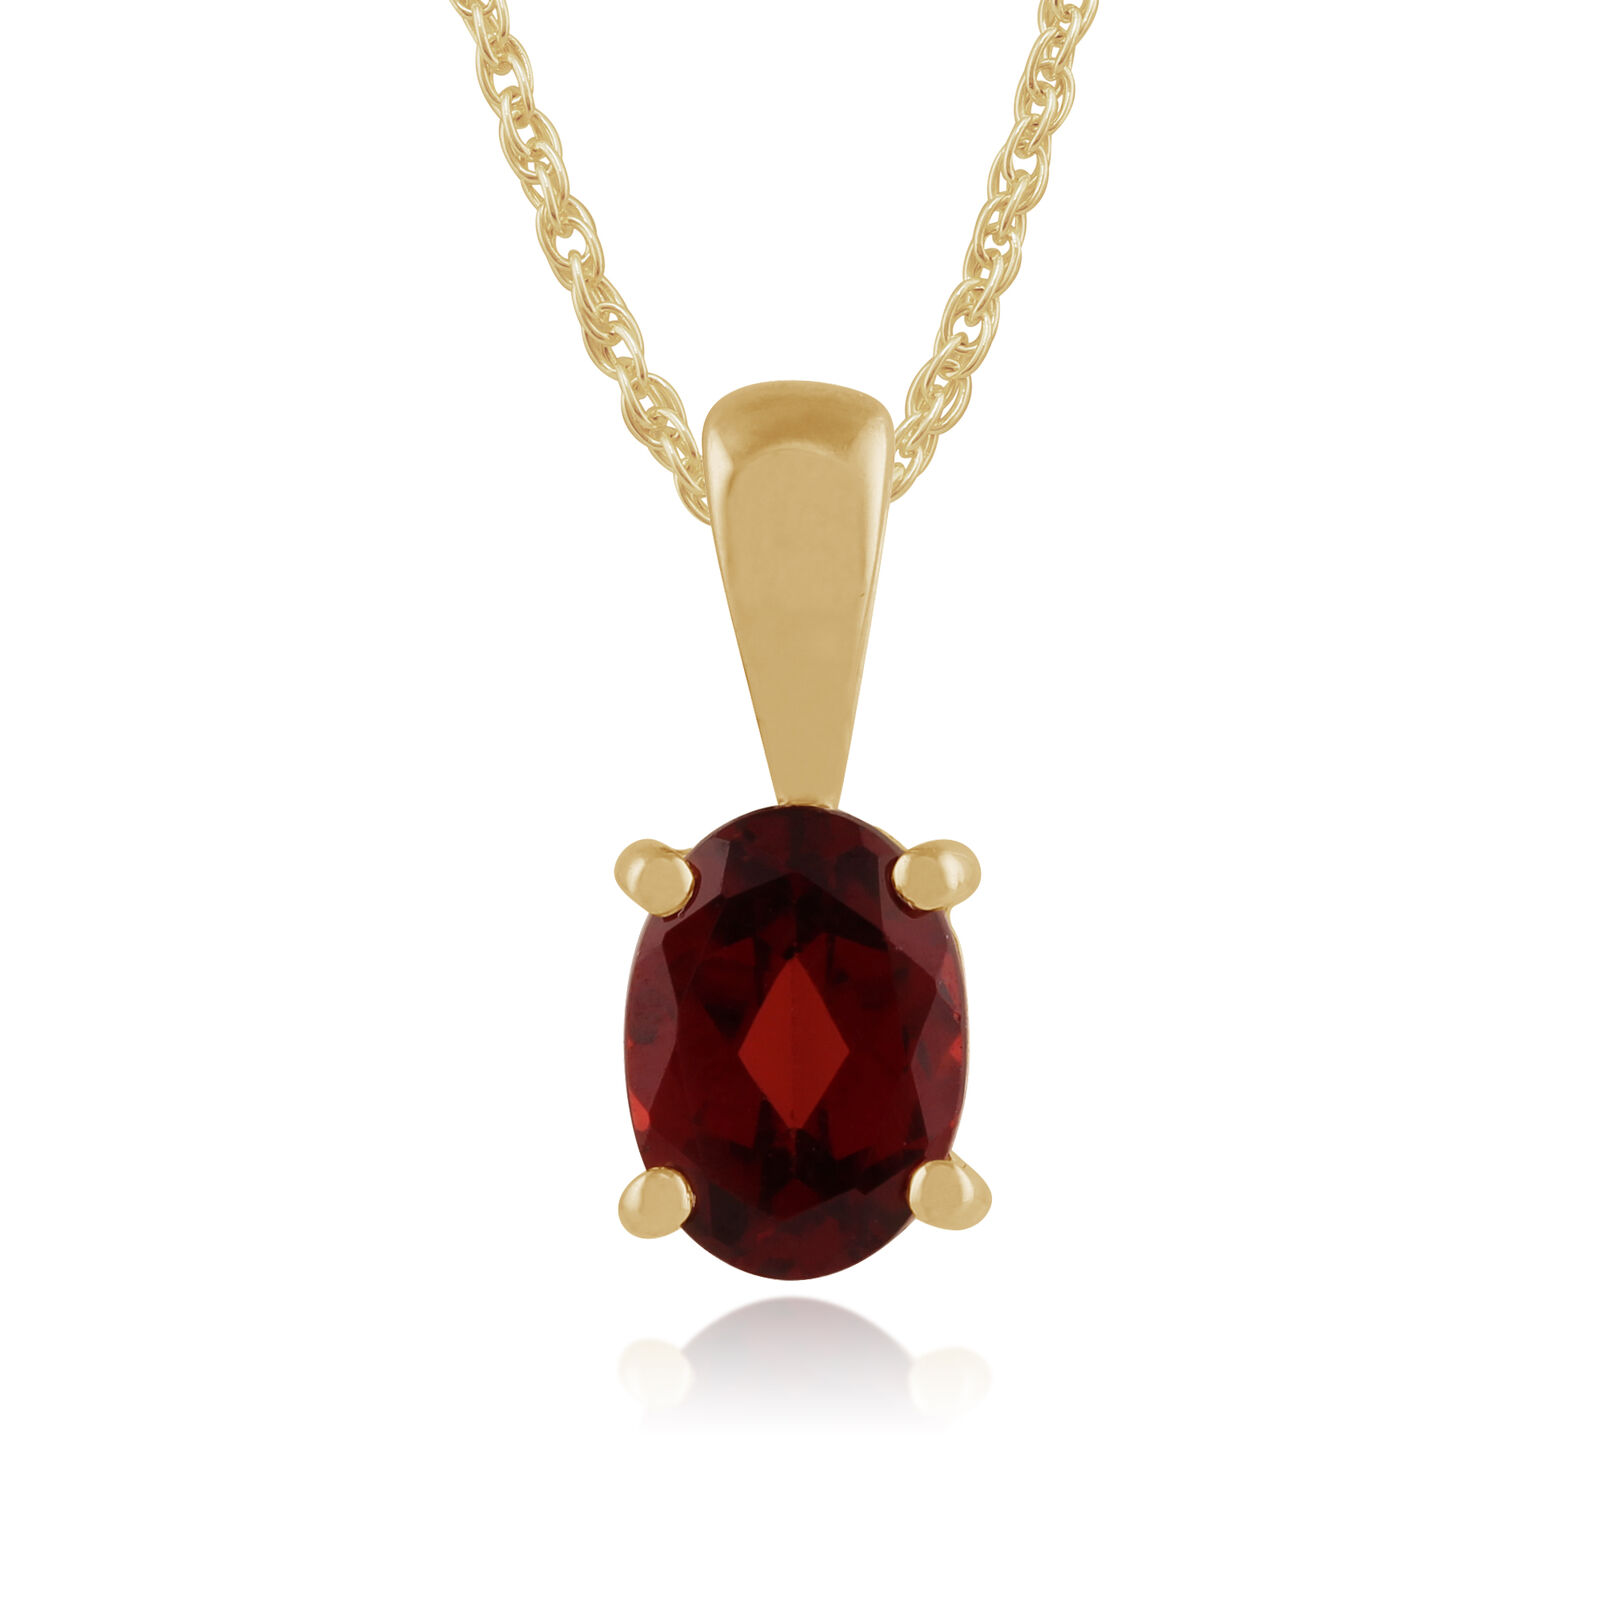 9ct Yellow gold 0.83ct Claw Set Mozambique Garnet Classic Oval Pendant on Chain